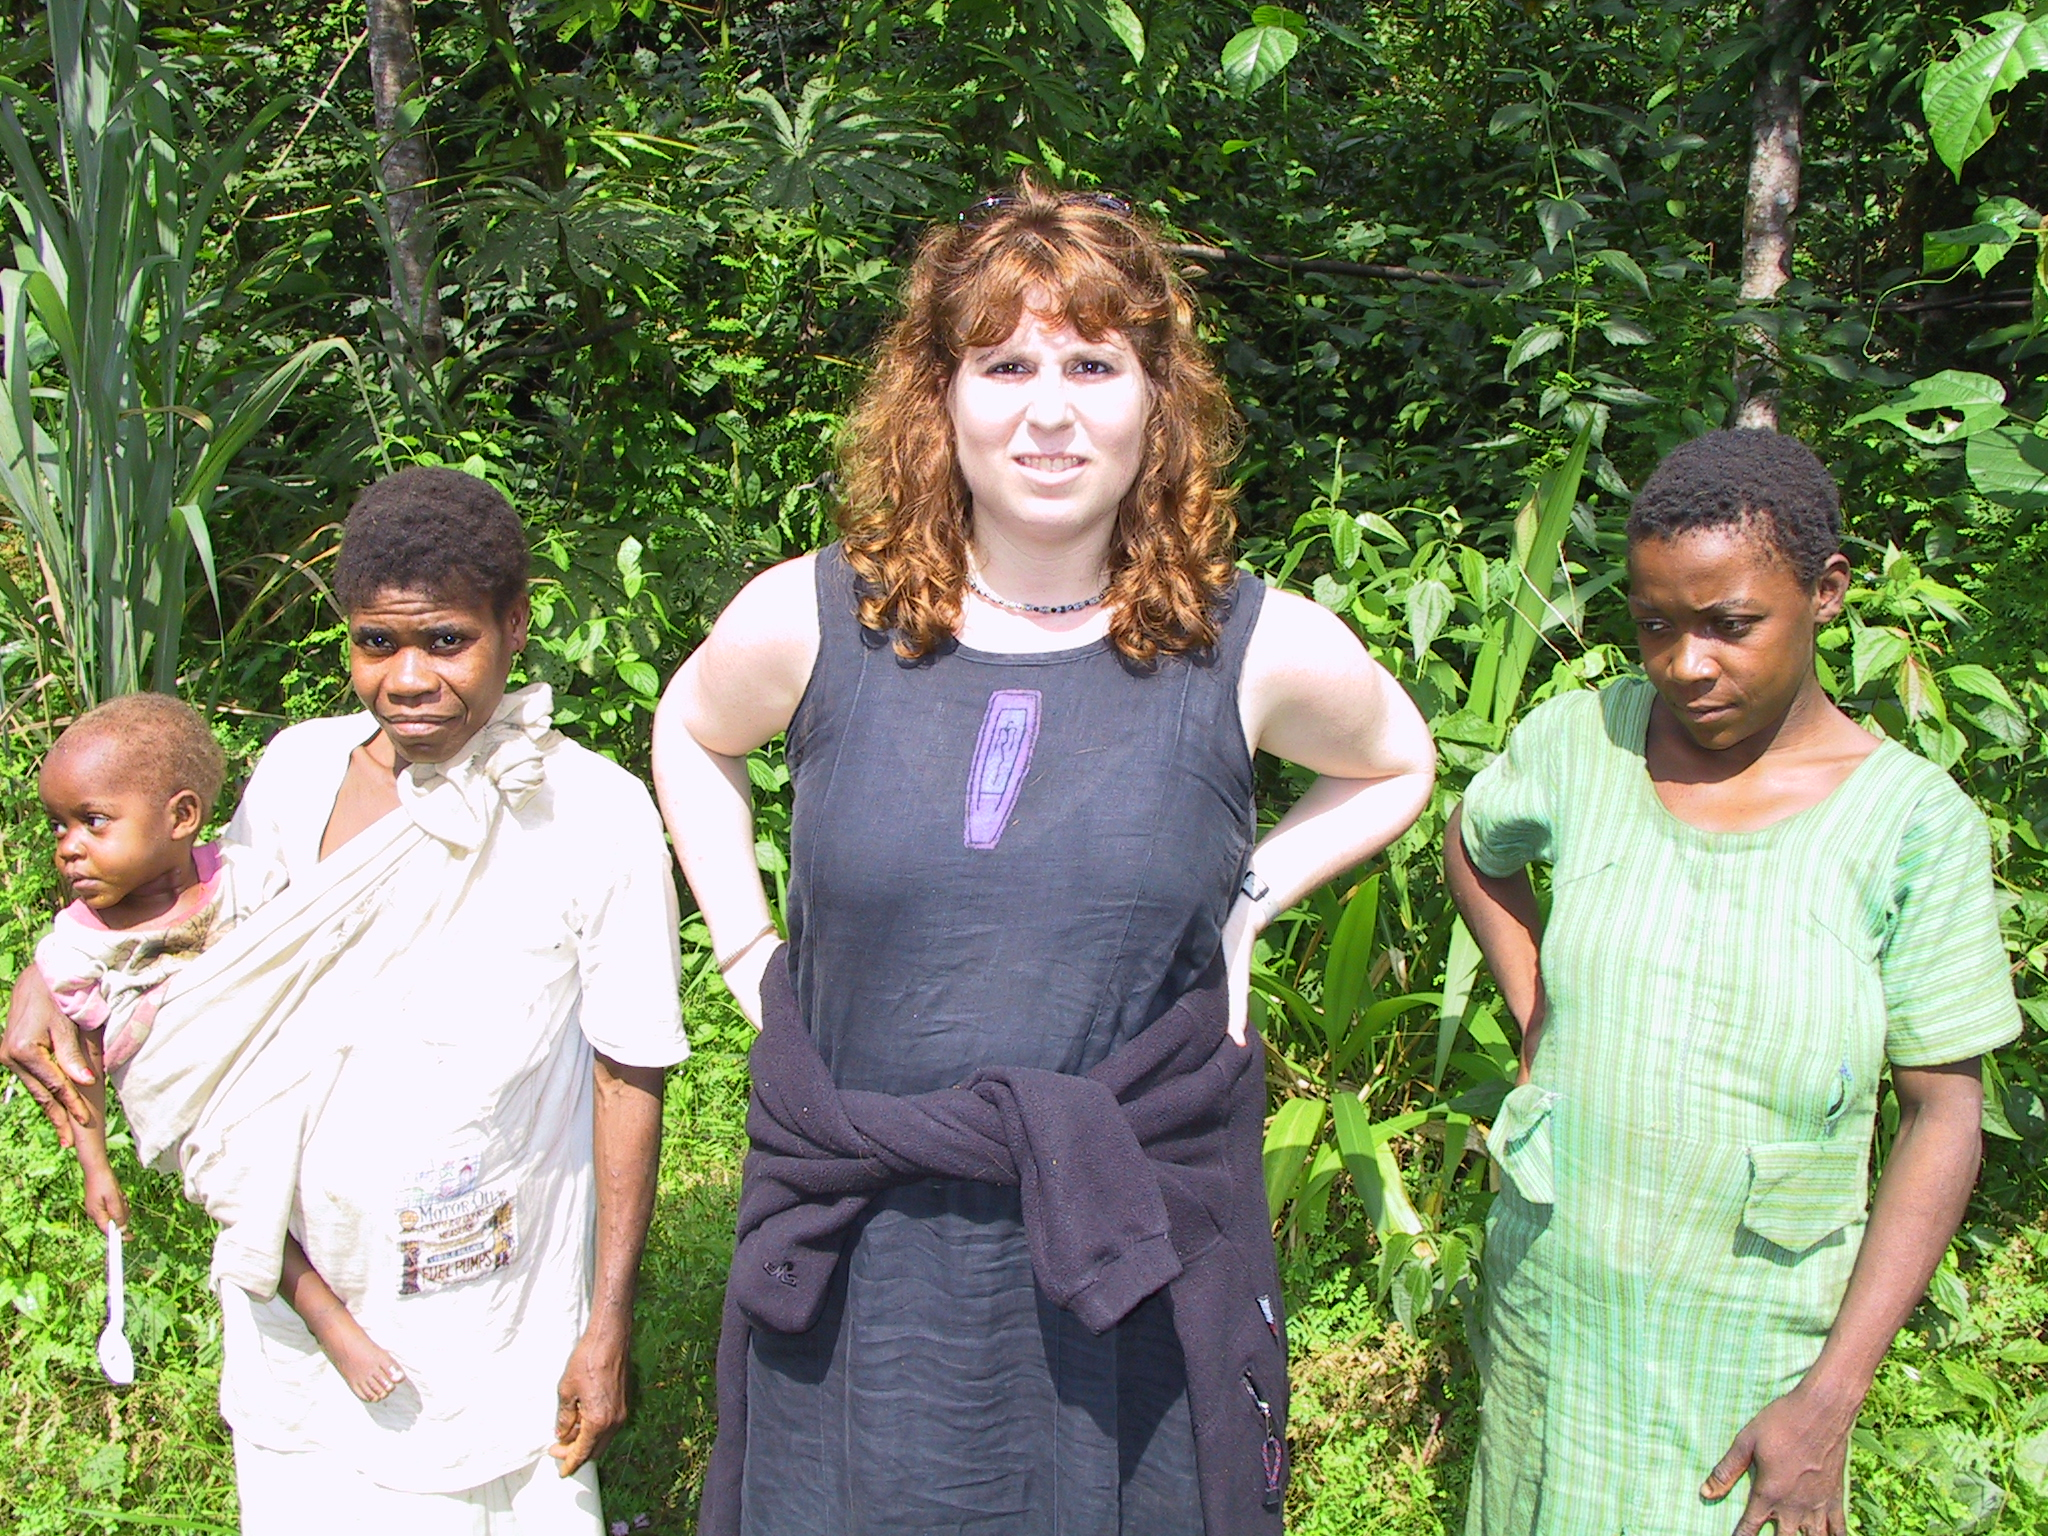 Researcher Sarah Tishkoff Center With Pygmy Women From A Village In Cameroon